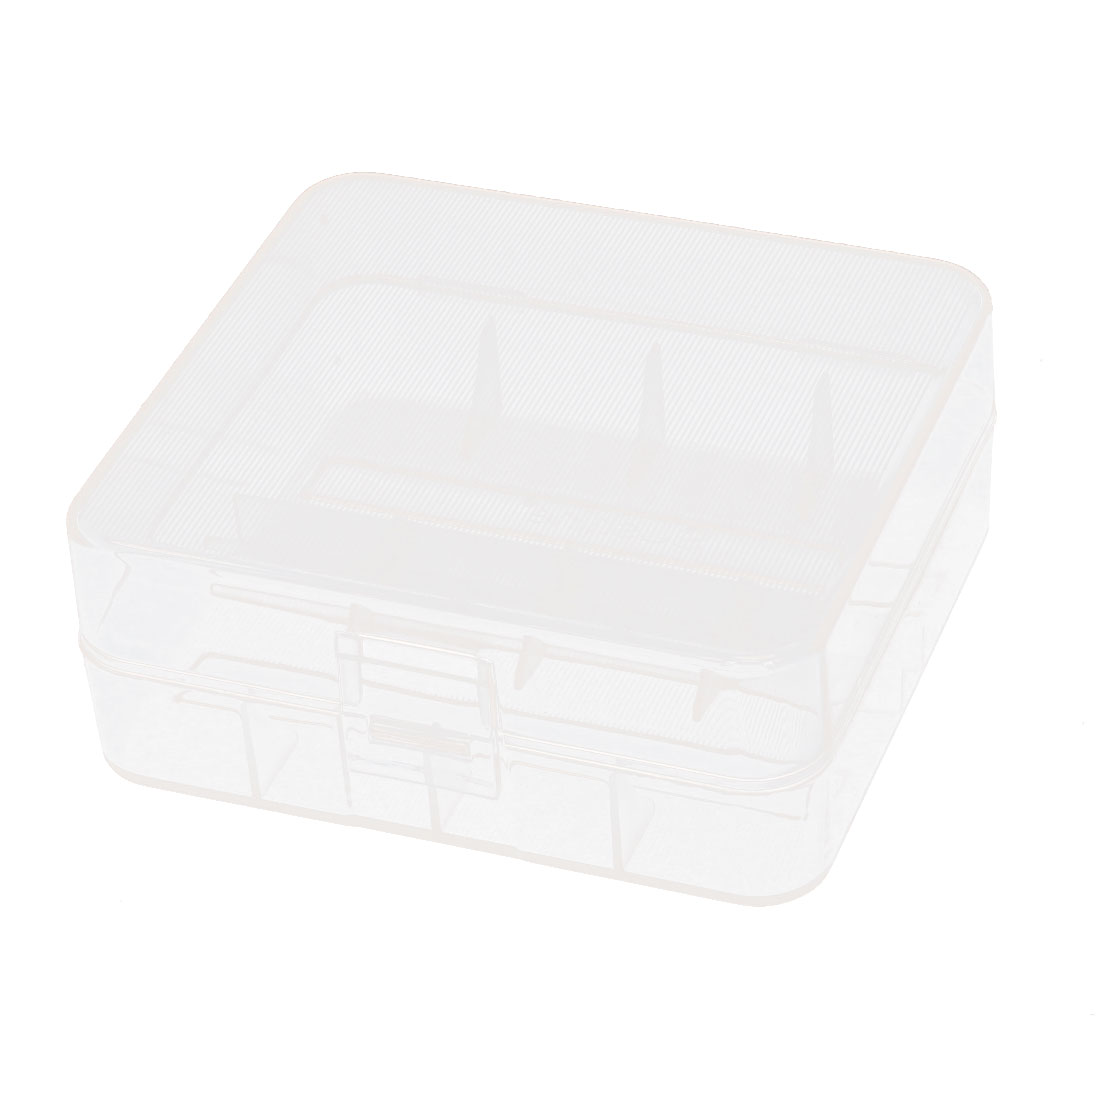 Clear Rectangle Storage Box Case Container for 2 x 26650 Batteries